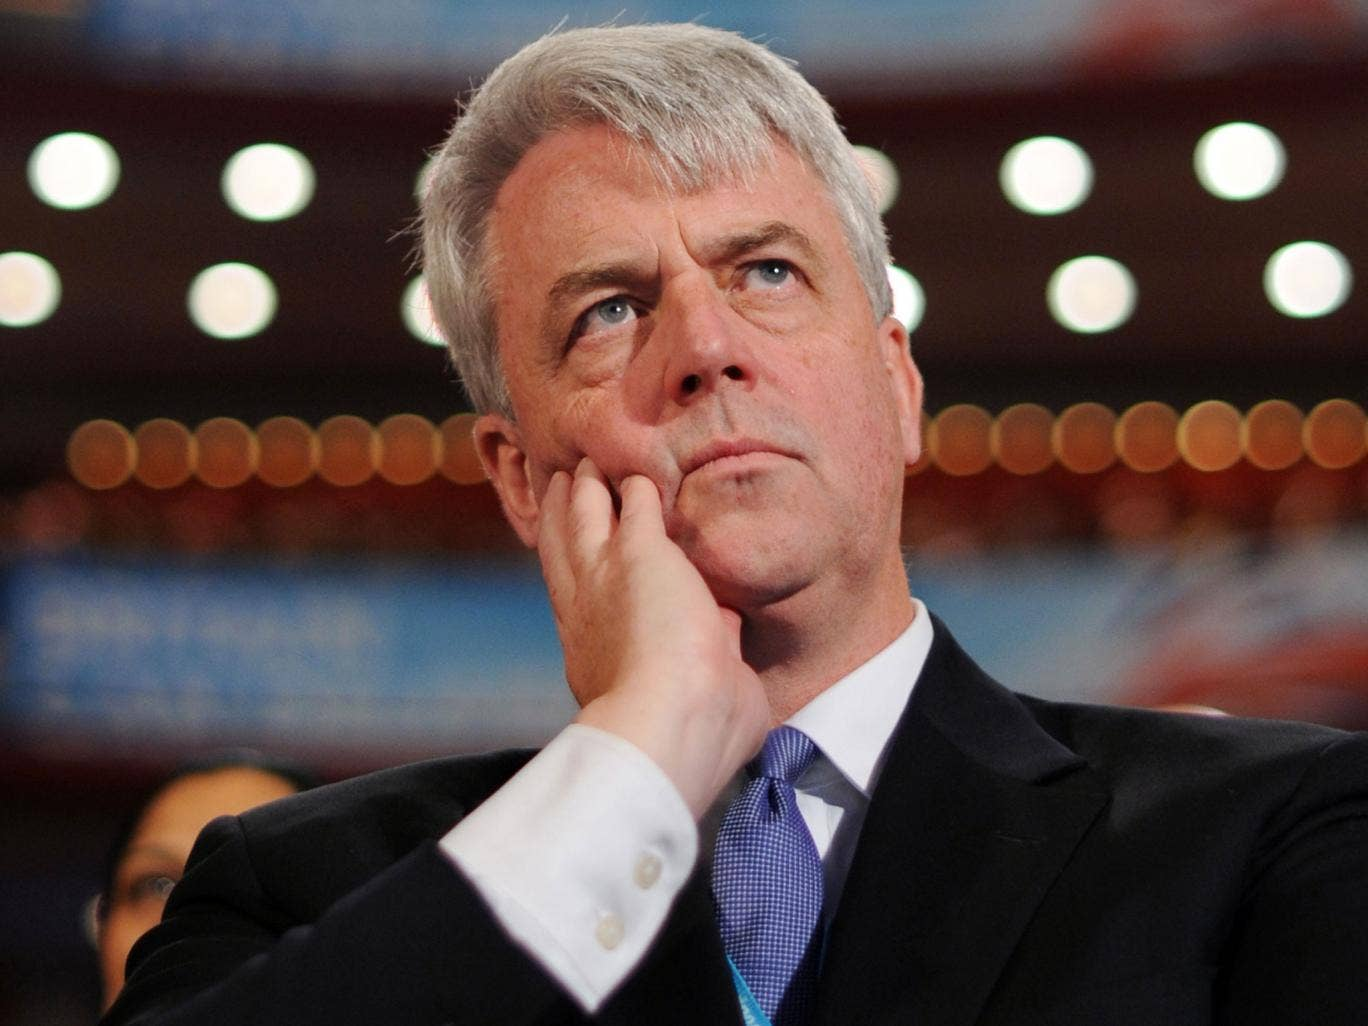 Andrew Lansley suggested the Tories should work together with the Liberal Democrats on a programme for government after the next general election